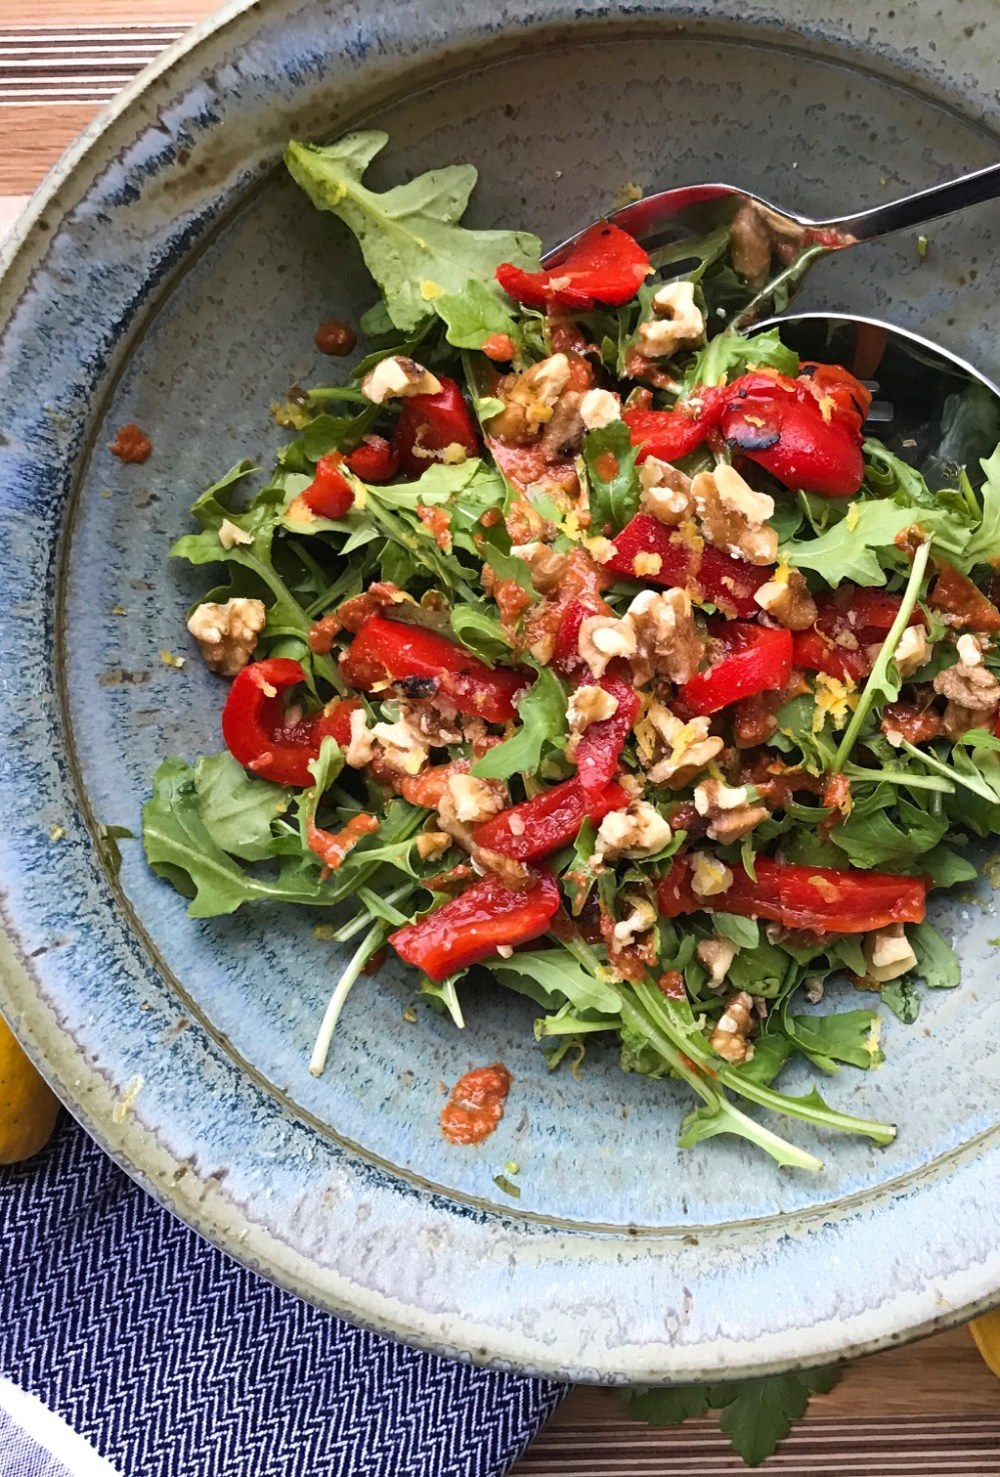 RECIPE: Arugula Salad with Muhammara Dressing | Paleo, Whole30, Low-Carb